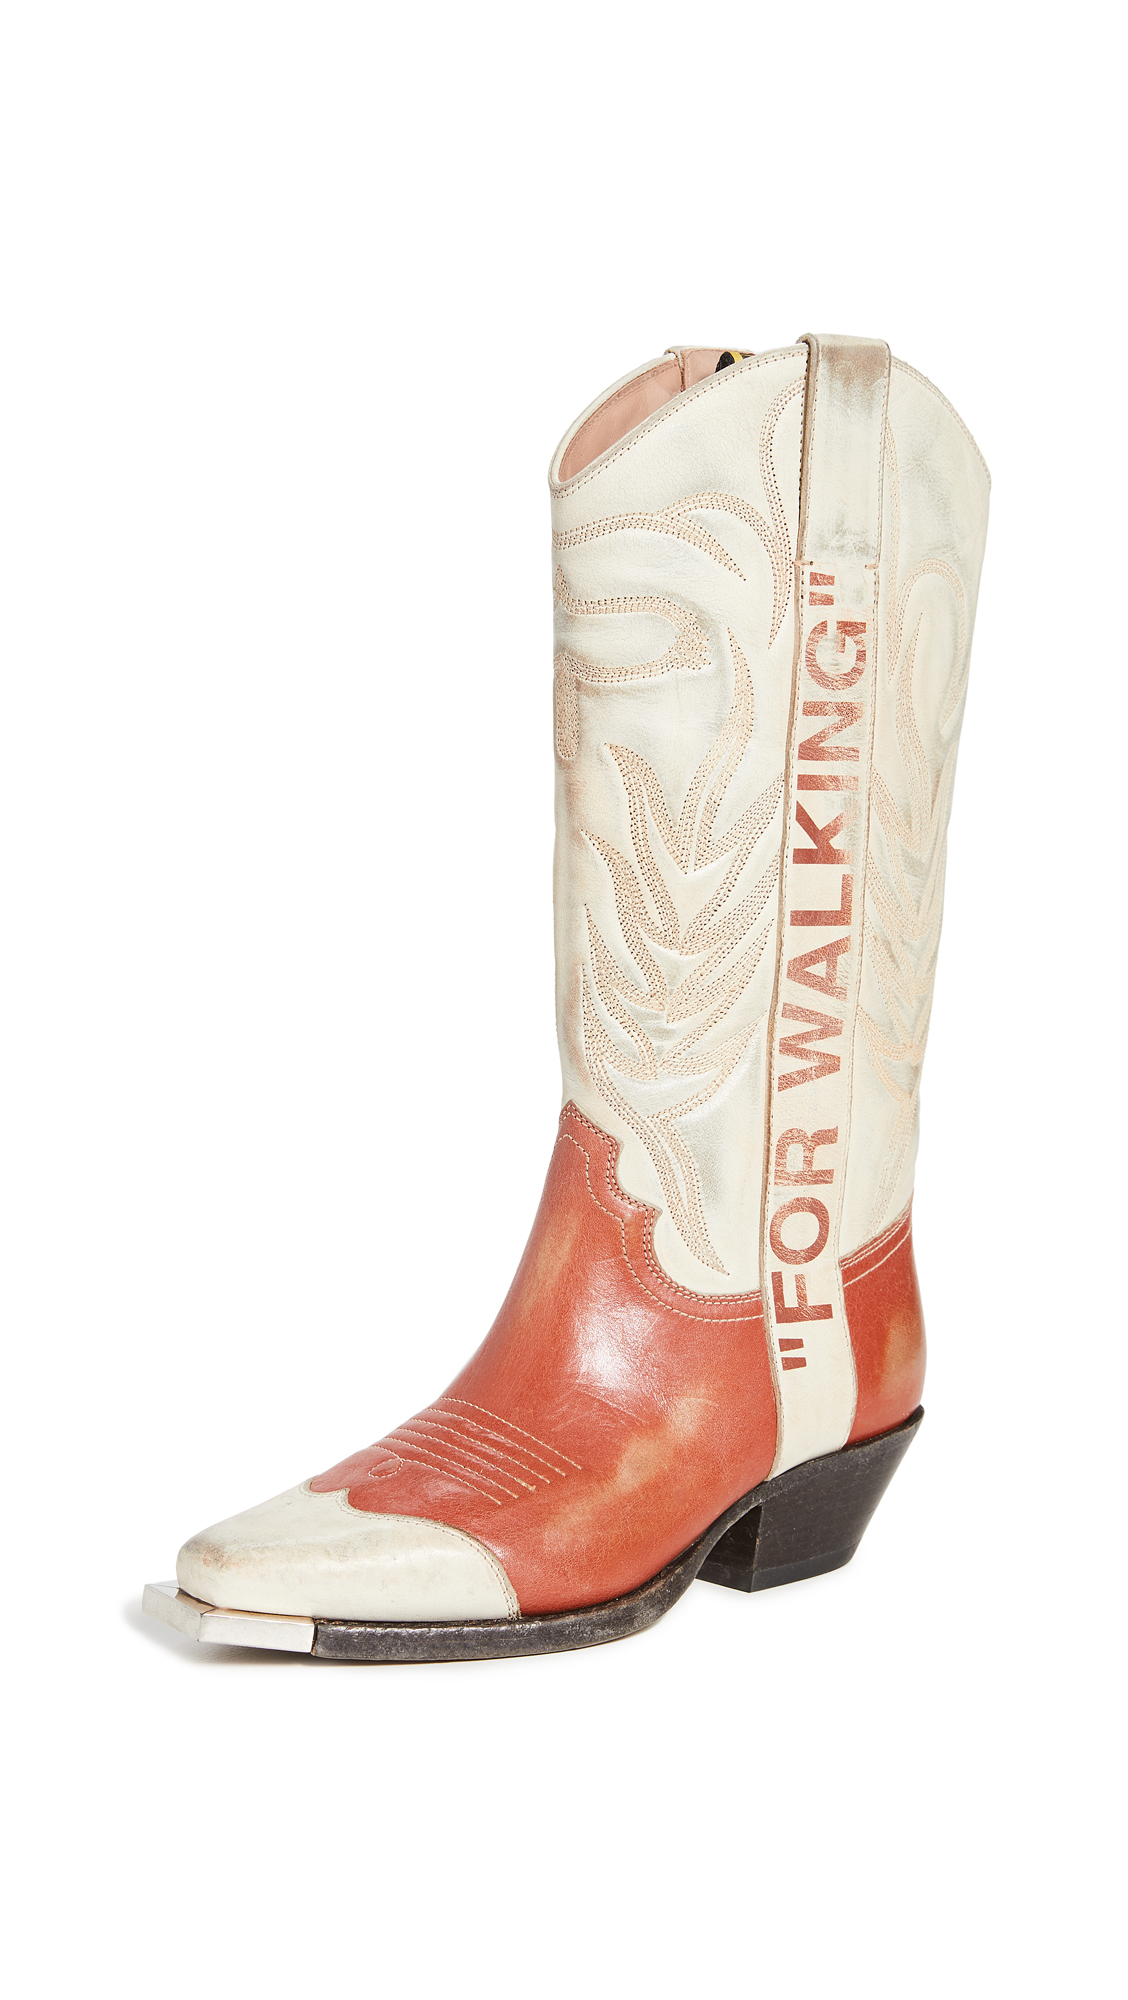 Buy Off-White Vintage Cowboy Boots online, shop Off-White